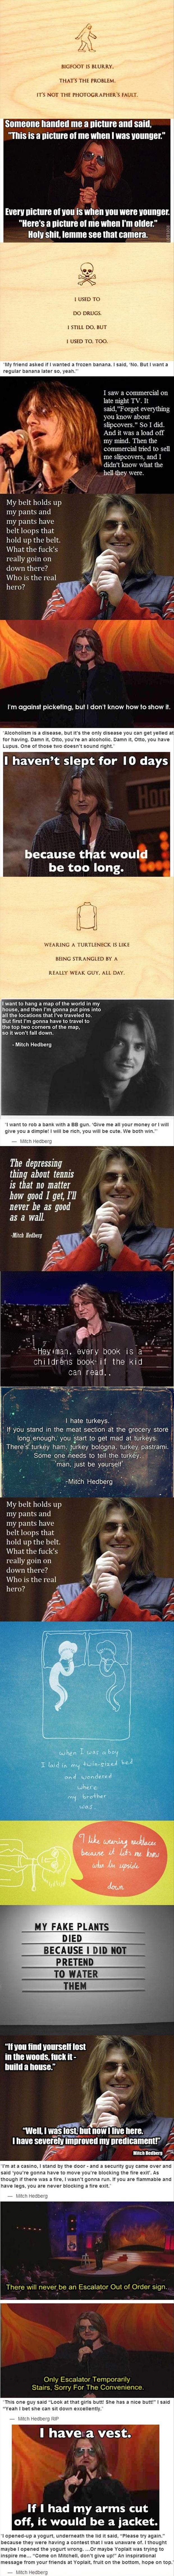 21 mitch hedberg quotes